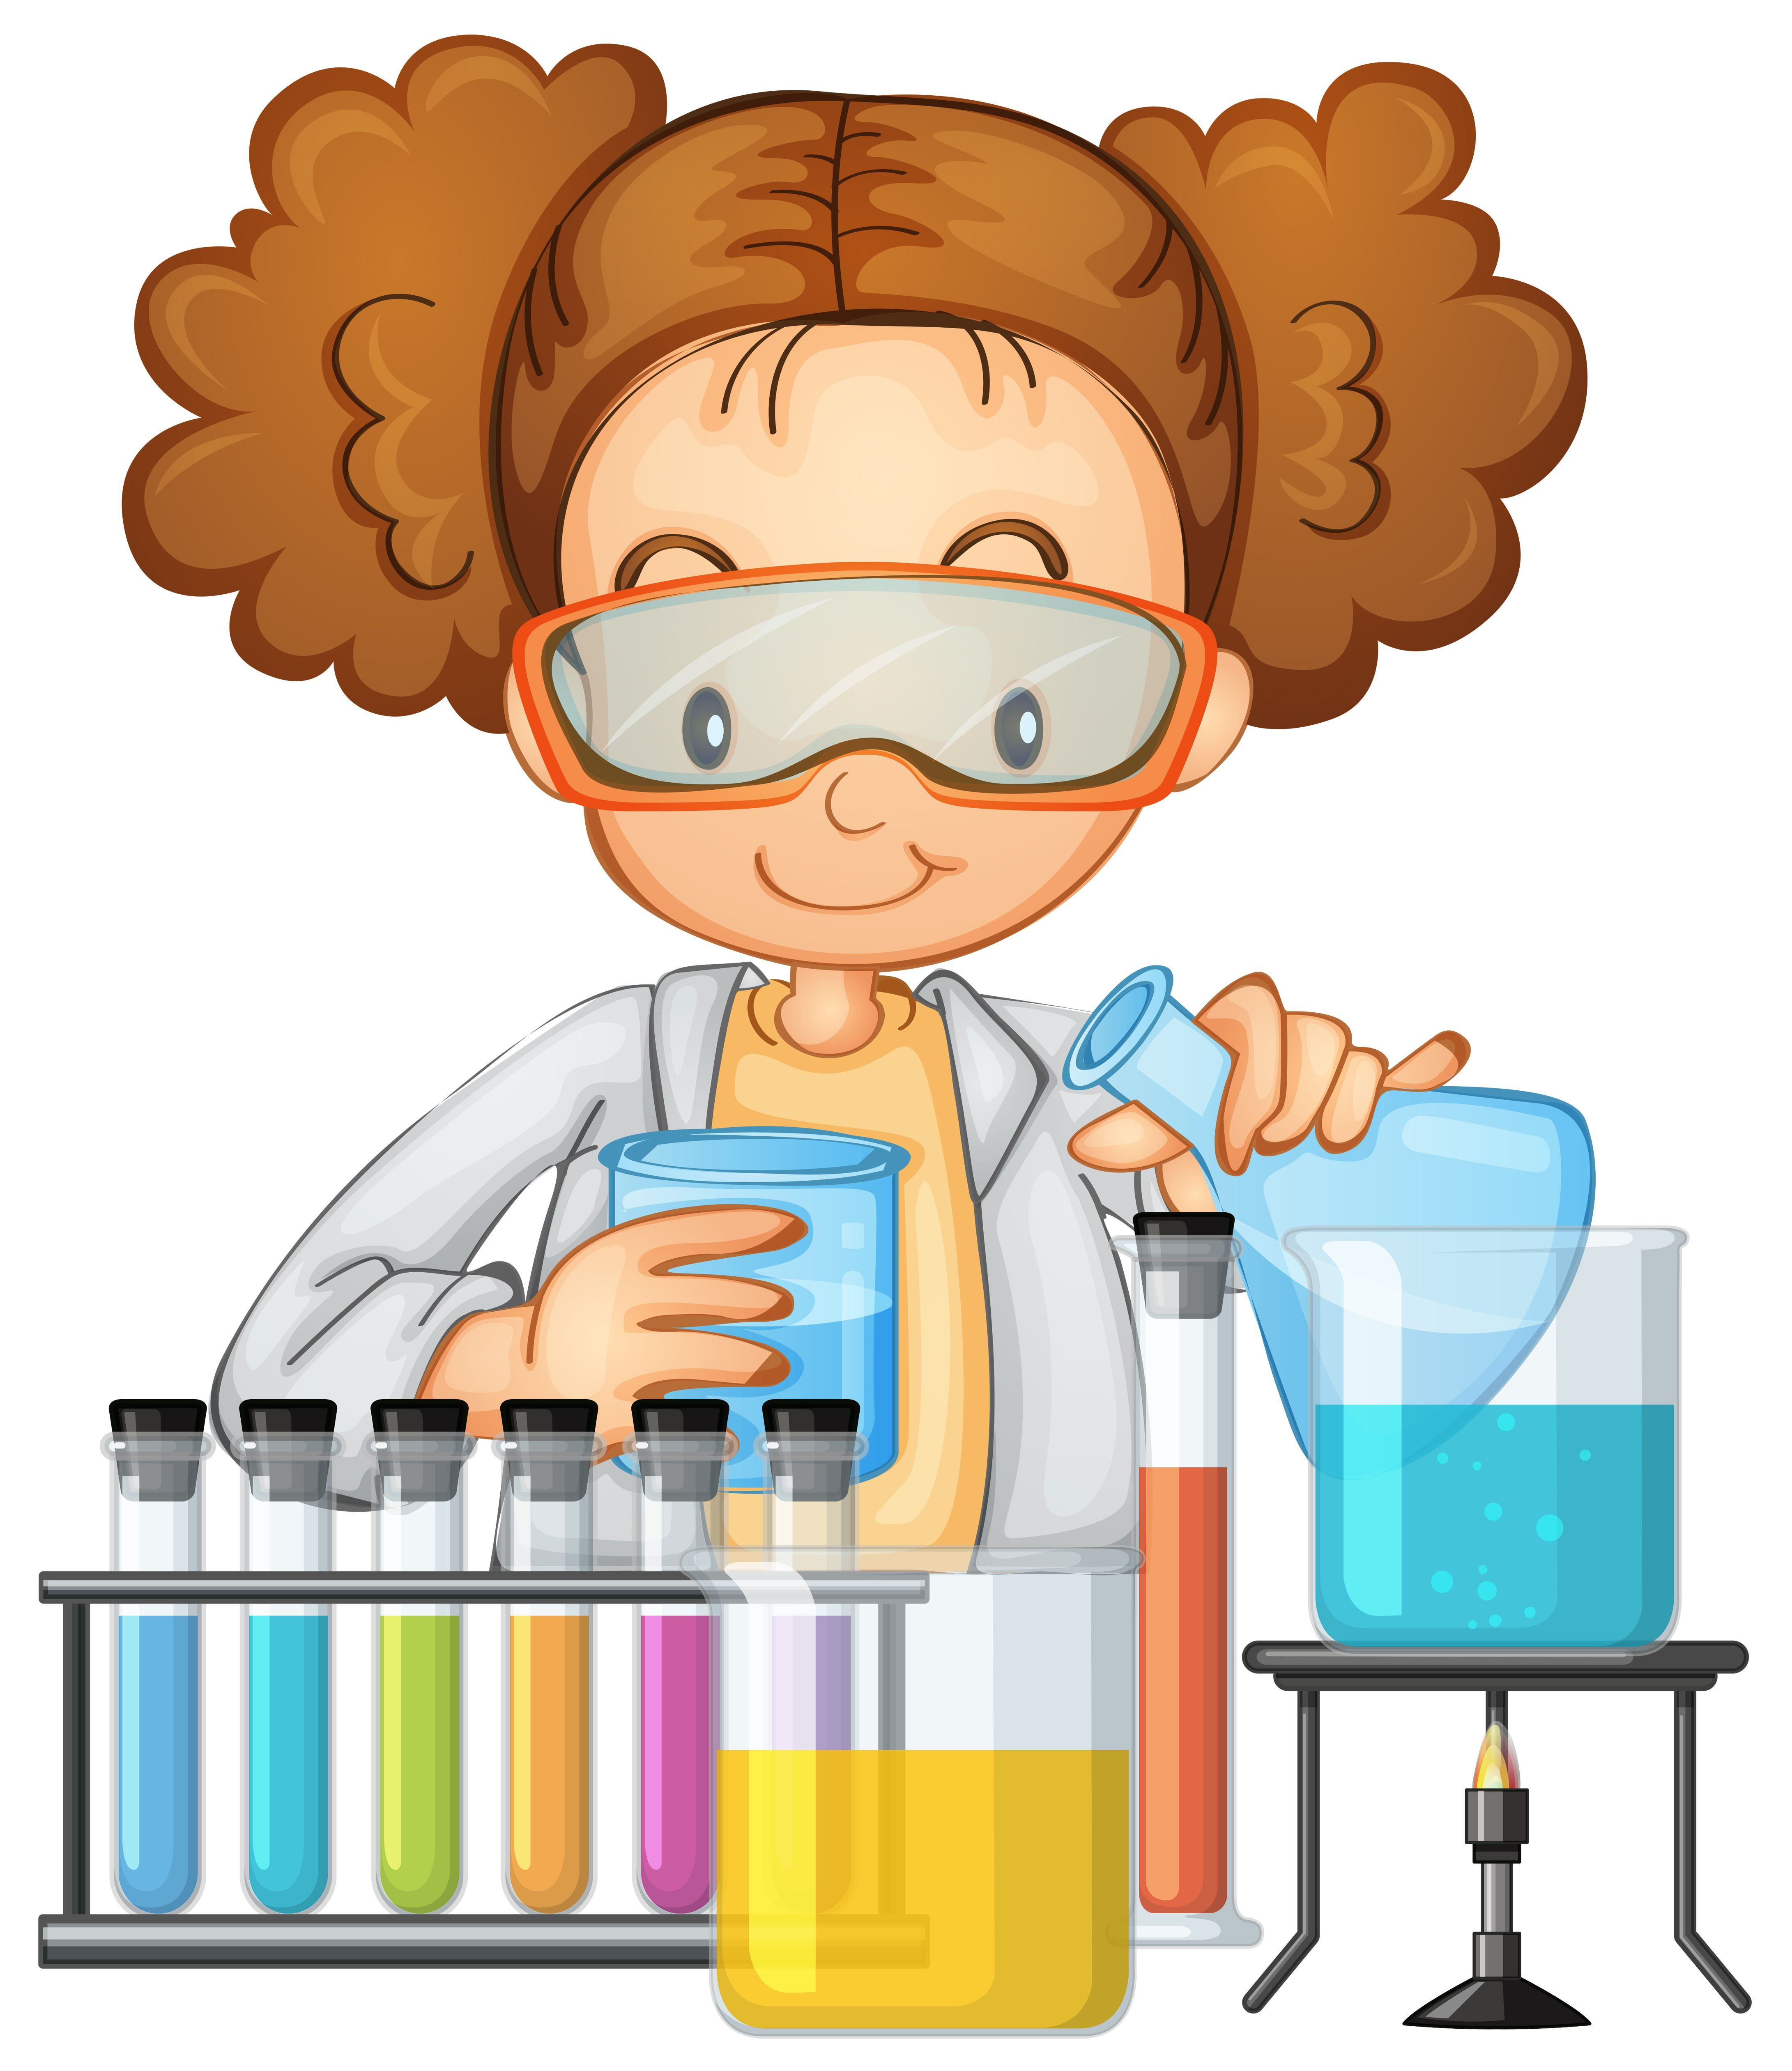 Download A Student In Science Lab Class Vector Art Choose From Over A Million Free Vectors Clipart In 2021 Science Classroom Decorations Cartoon Clip Art Science Lab